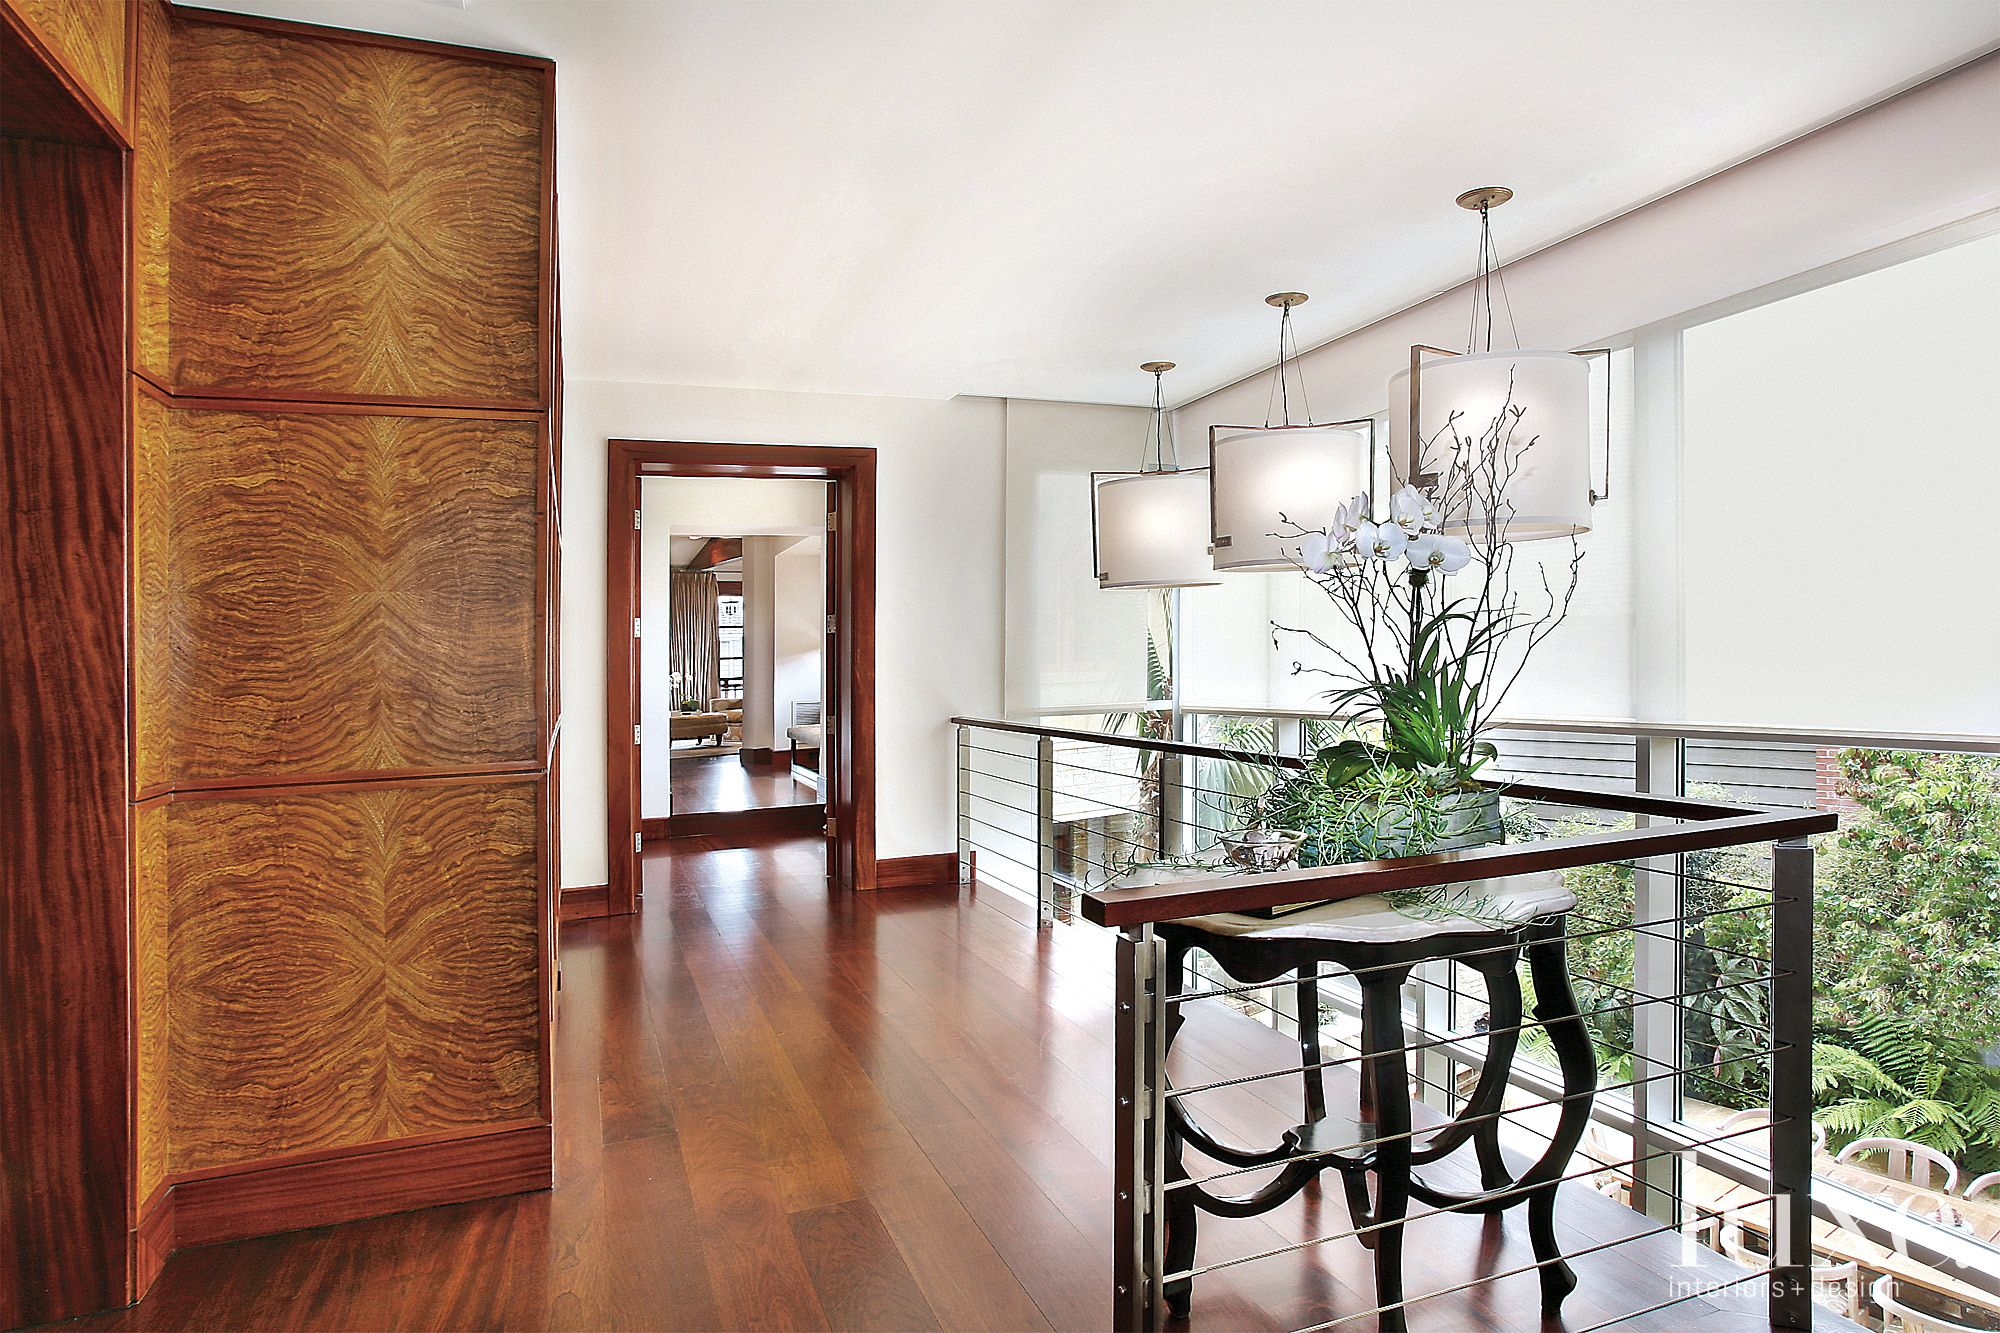 Contemporary Mahogany-Paneled Hallway